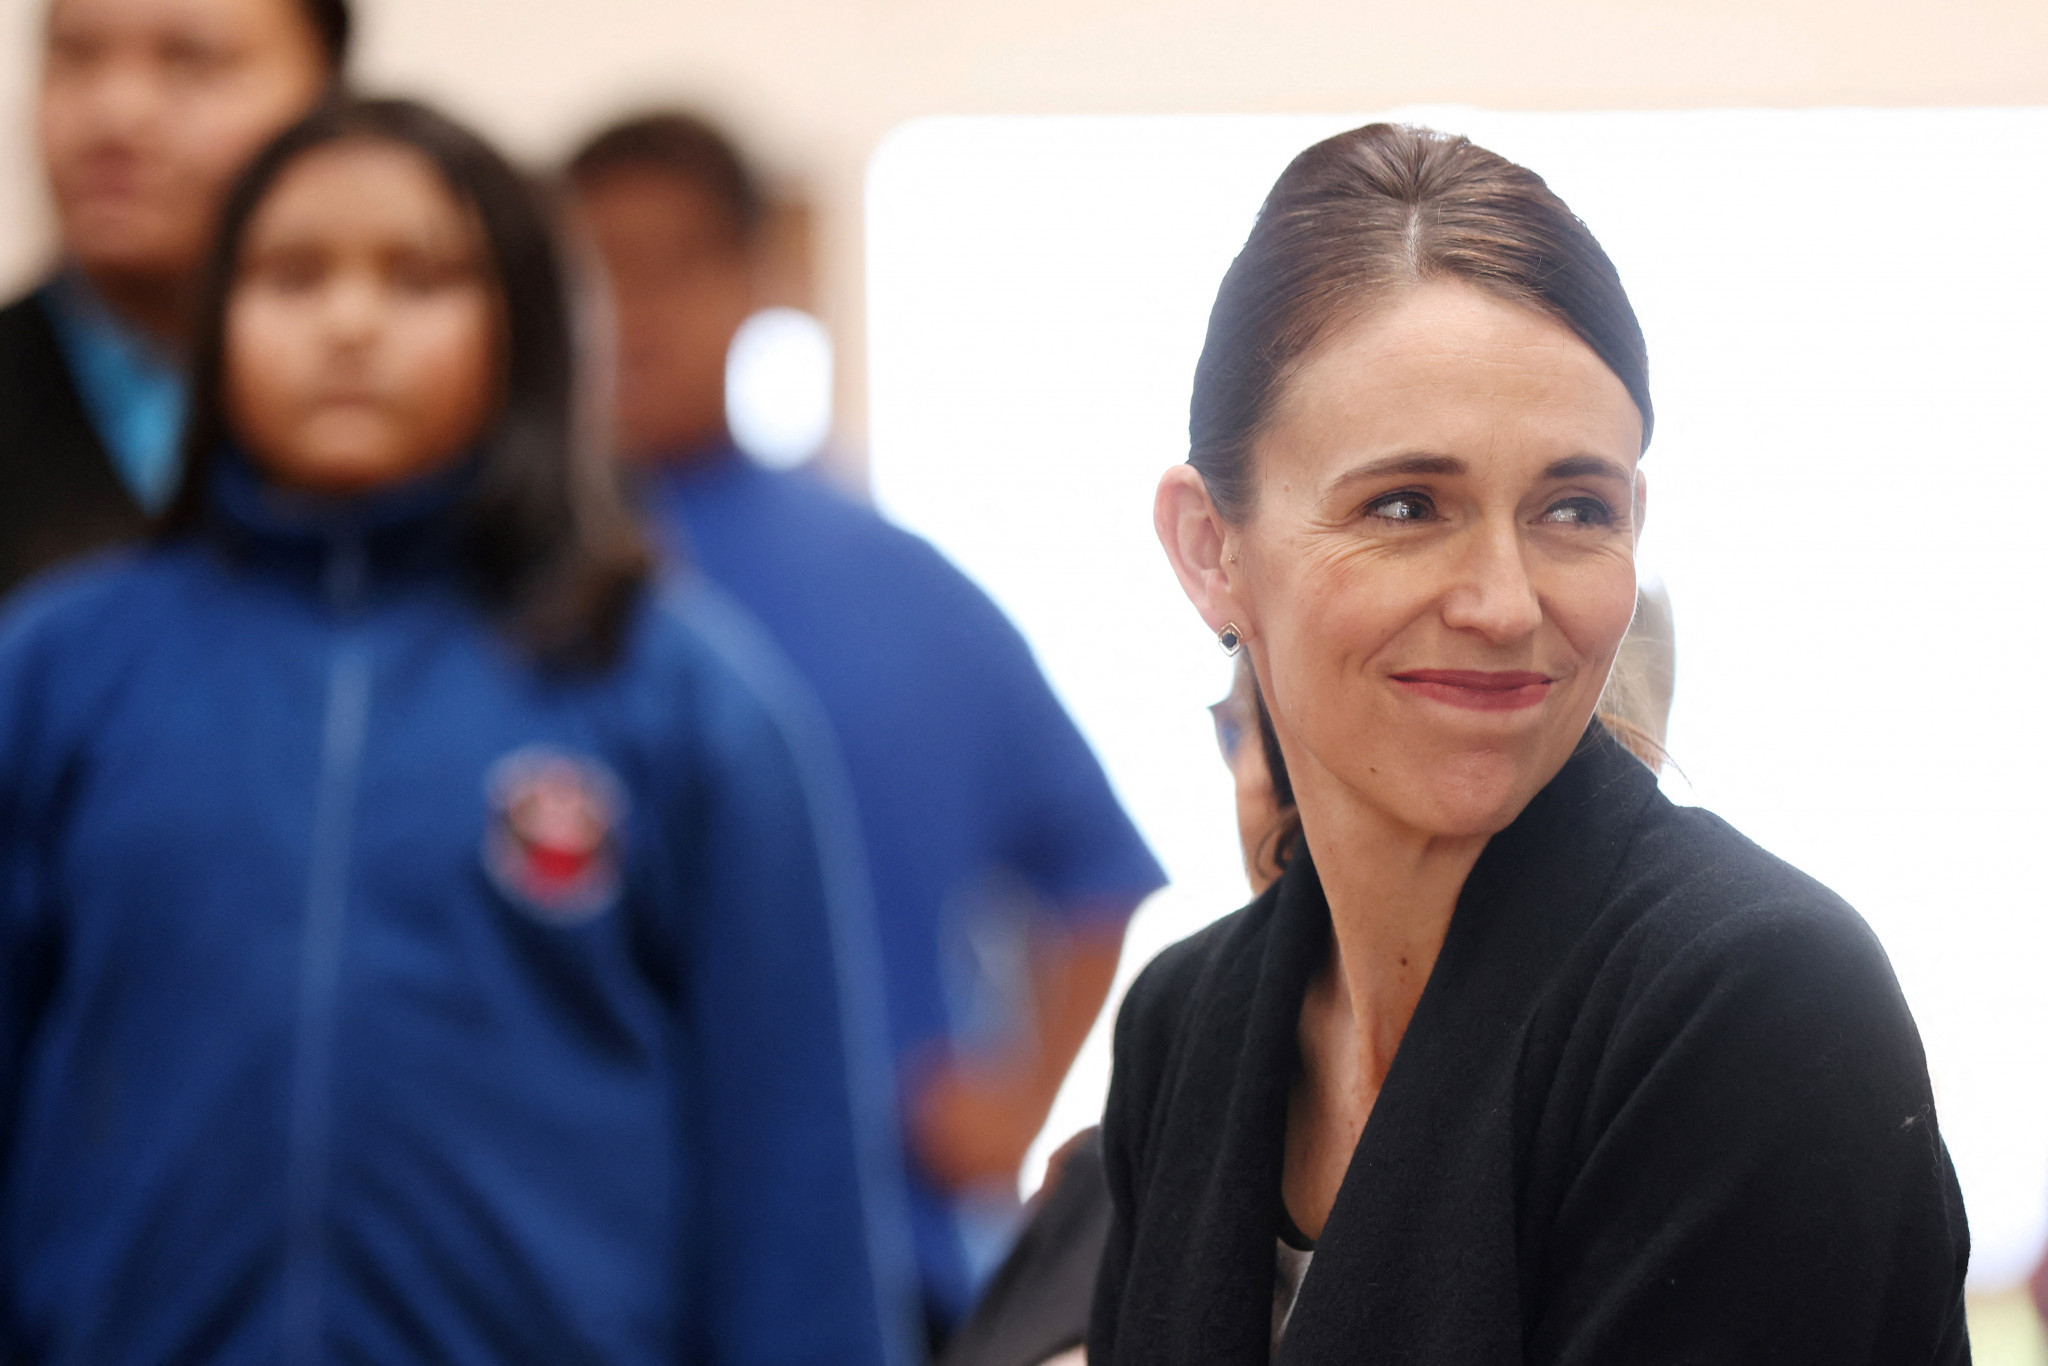 New Zealand Prime Minister Ardern backs transgender weightlifter Hubbard prior to Olympic debut